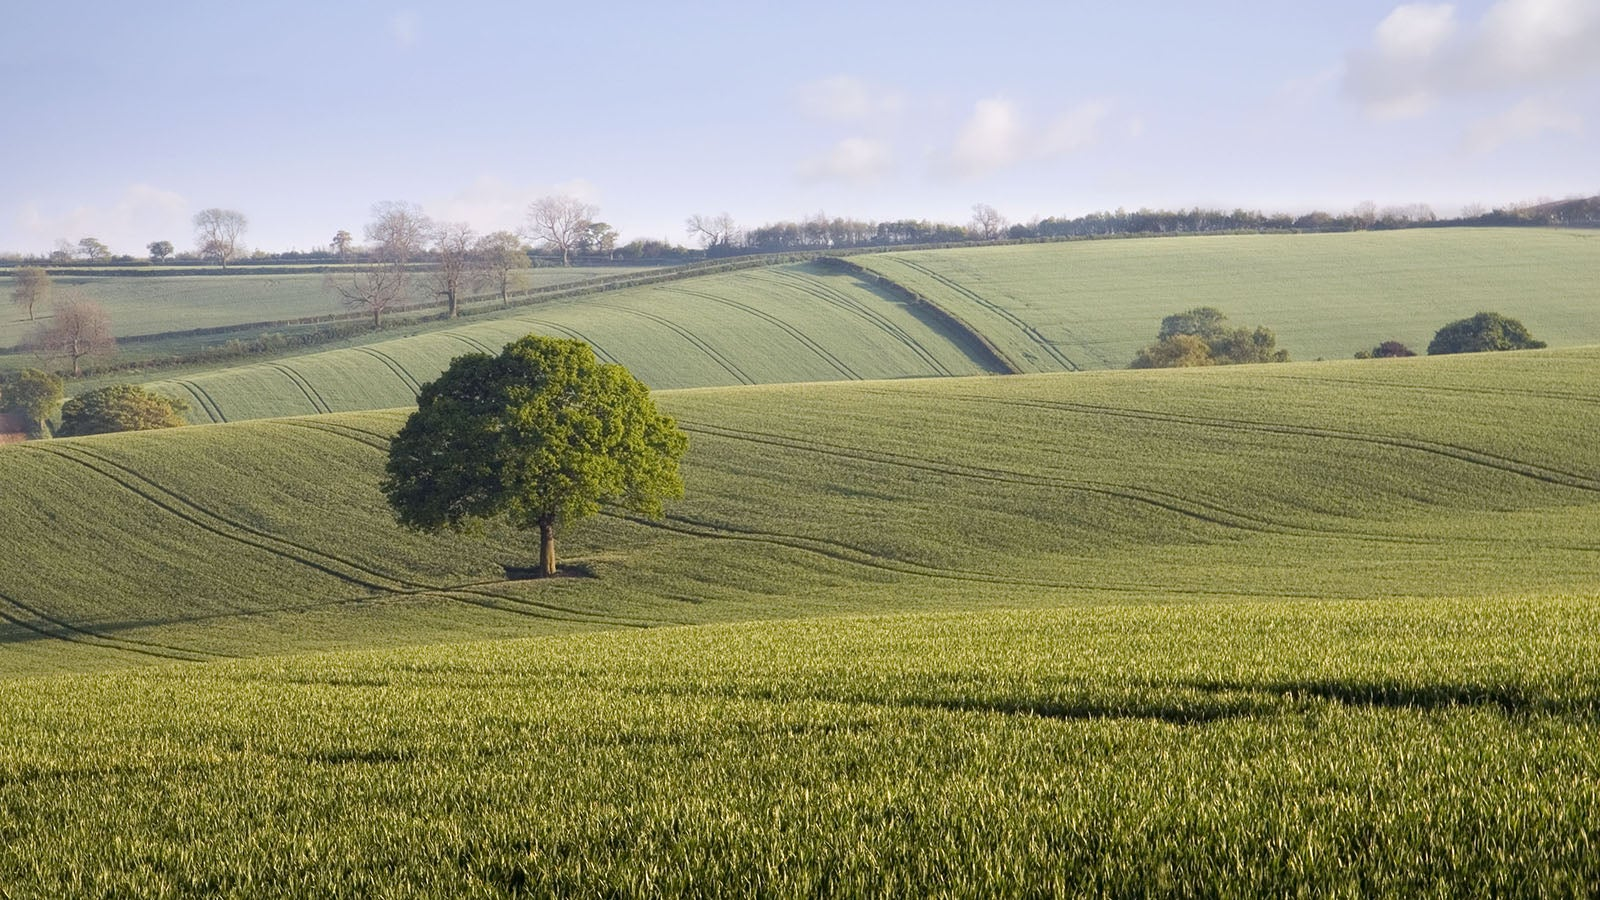 A photo of the green countryside with trees dotted about